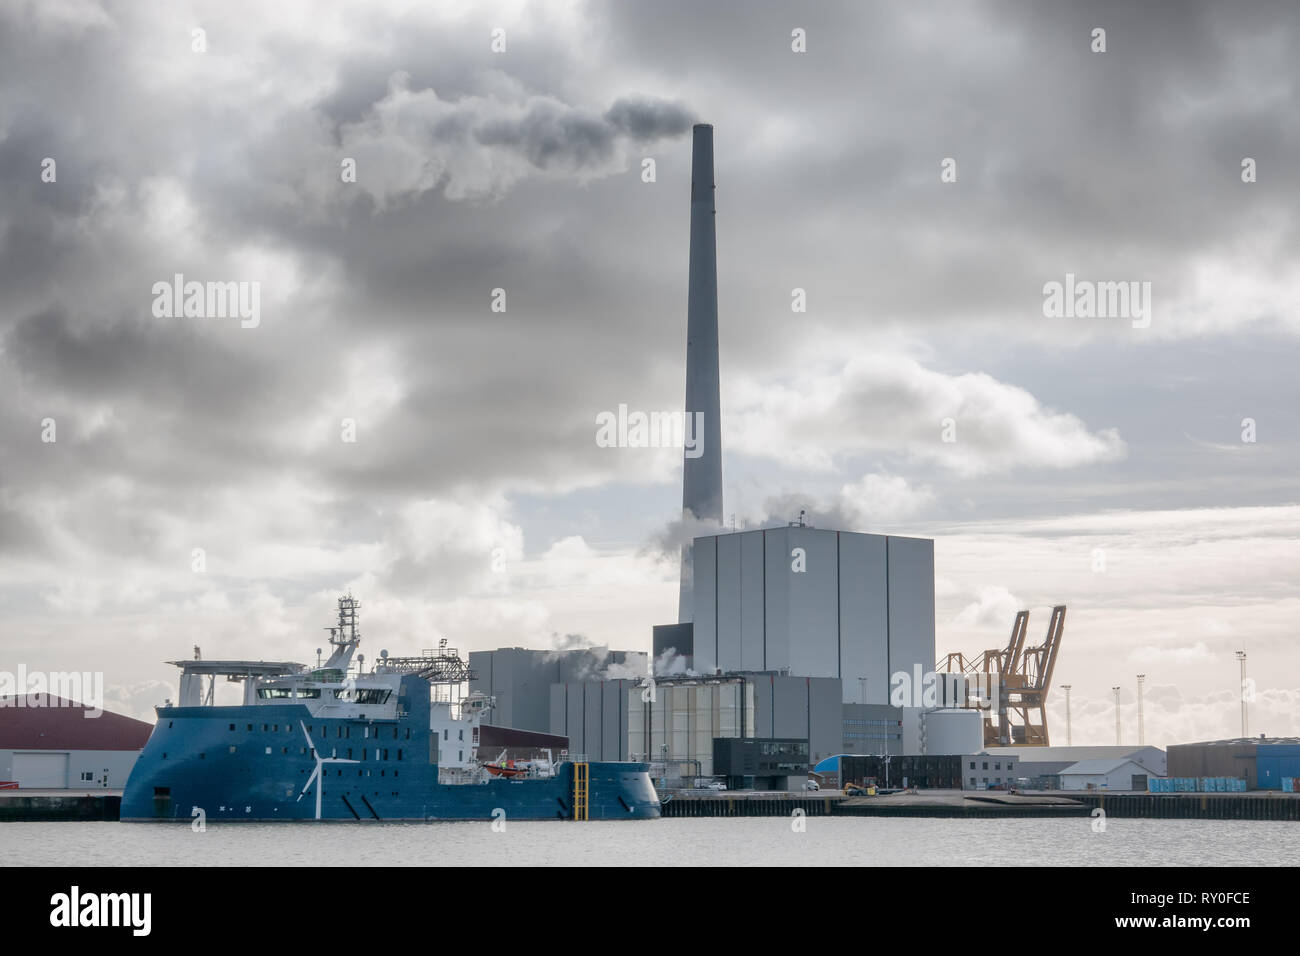 Wind power Supply vessels in Esbjerg harbor, Denmark - Stock Image